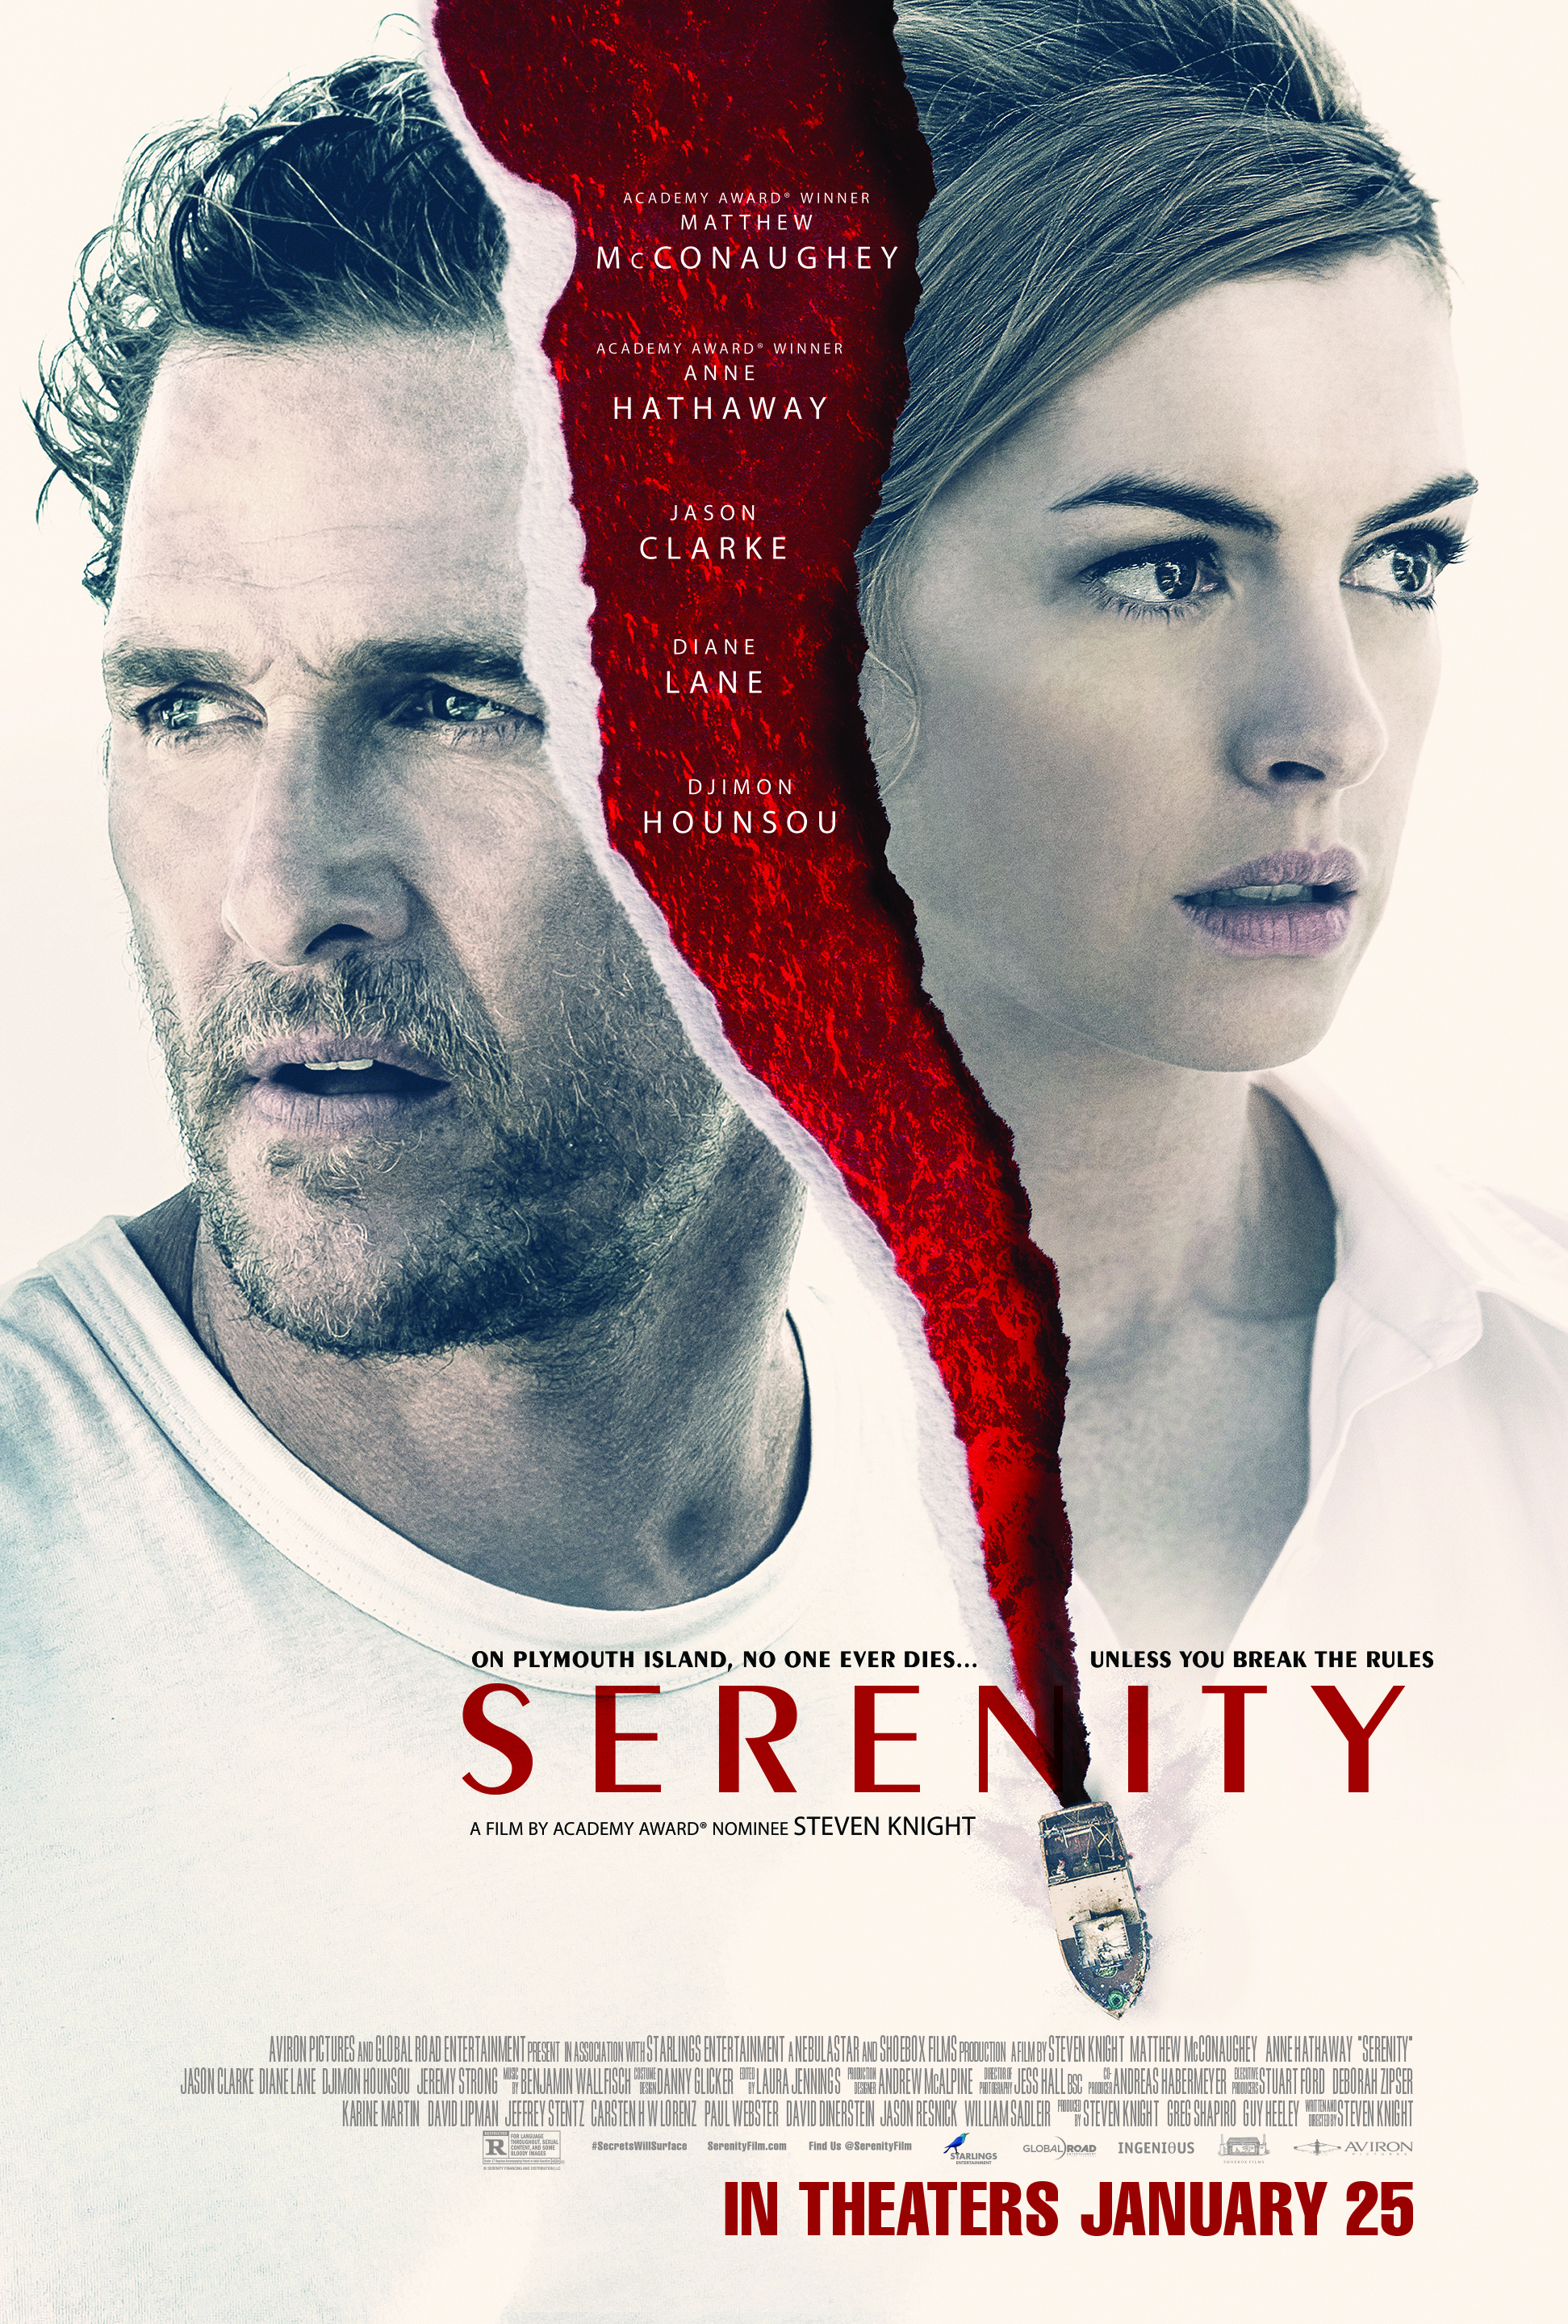 Serenity (2019) - Directed by: Steven KnightStarring: Matthew McConaughey, Anne Hathaway, Diane Lane, Jason Clarke, Djimon HounsouRated: R for Language throughout, Sexual Content, and Some Bloody ImagesRunning Time: 1 h 46 mTMM Score: 2 StarsSTRENGTHS: So Bad It's GoodWEAKNESSES: Laughable Dialogue, Confusing Direction, Obscure Characters, Absurd Twists, Bizarre Writing